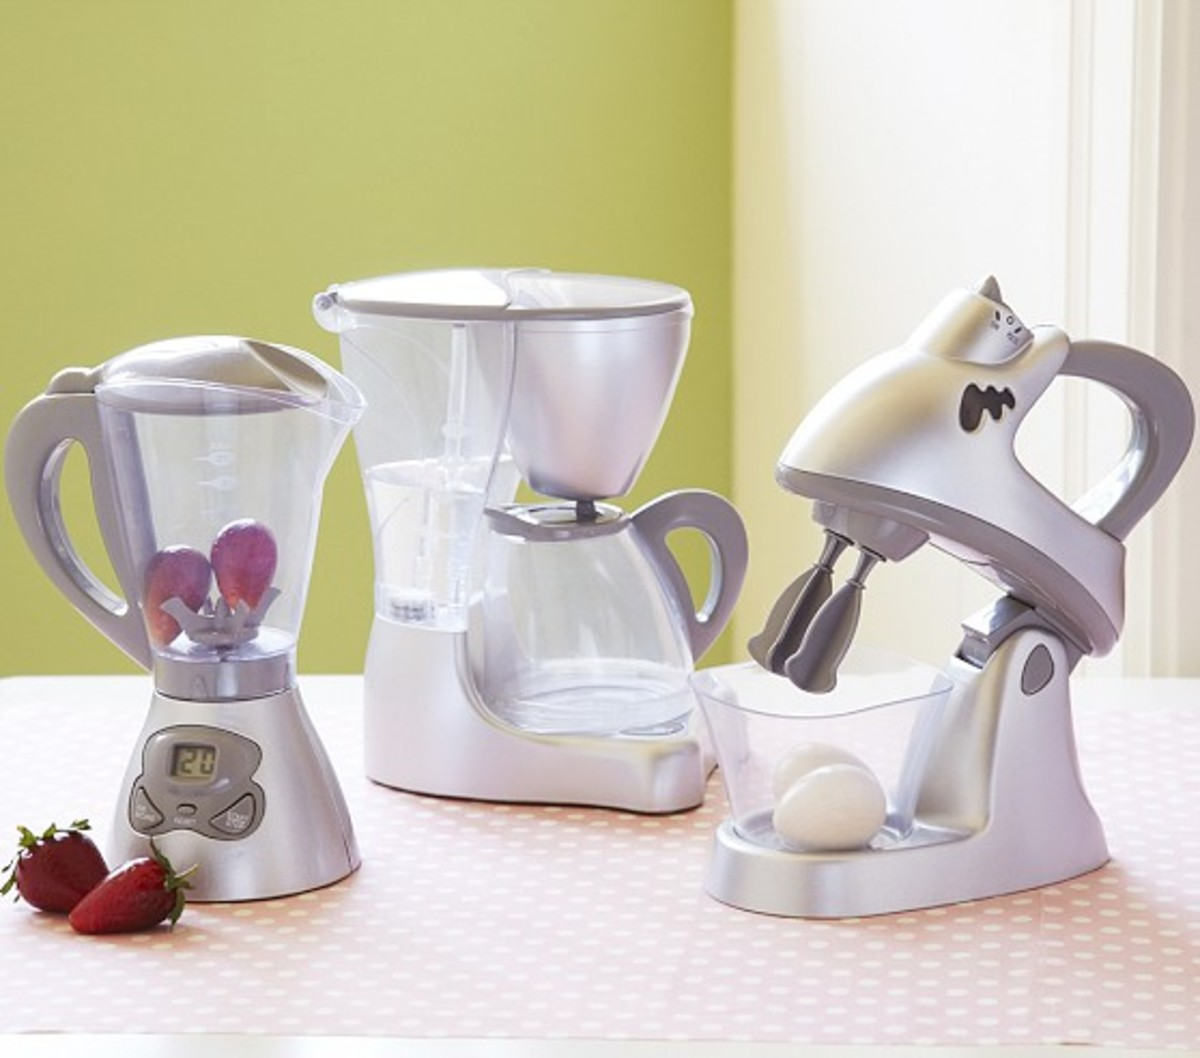 Holiday Gift List on TodaysMama.com: Toy Kitchen Appliances from Pottery Barn